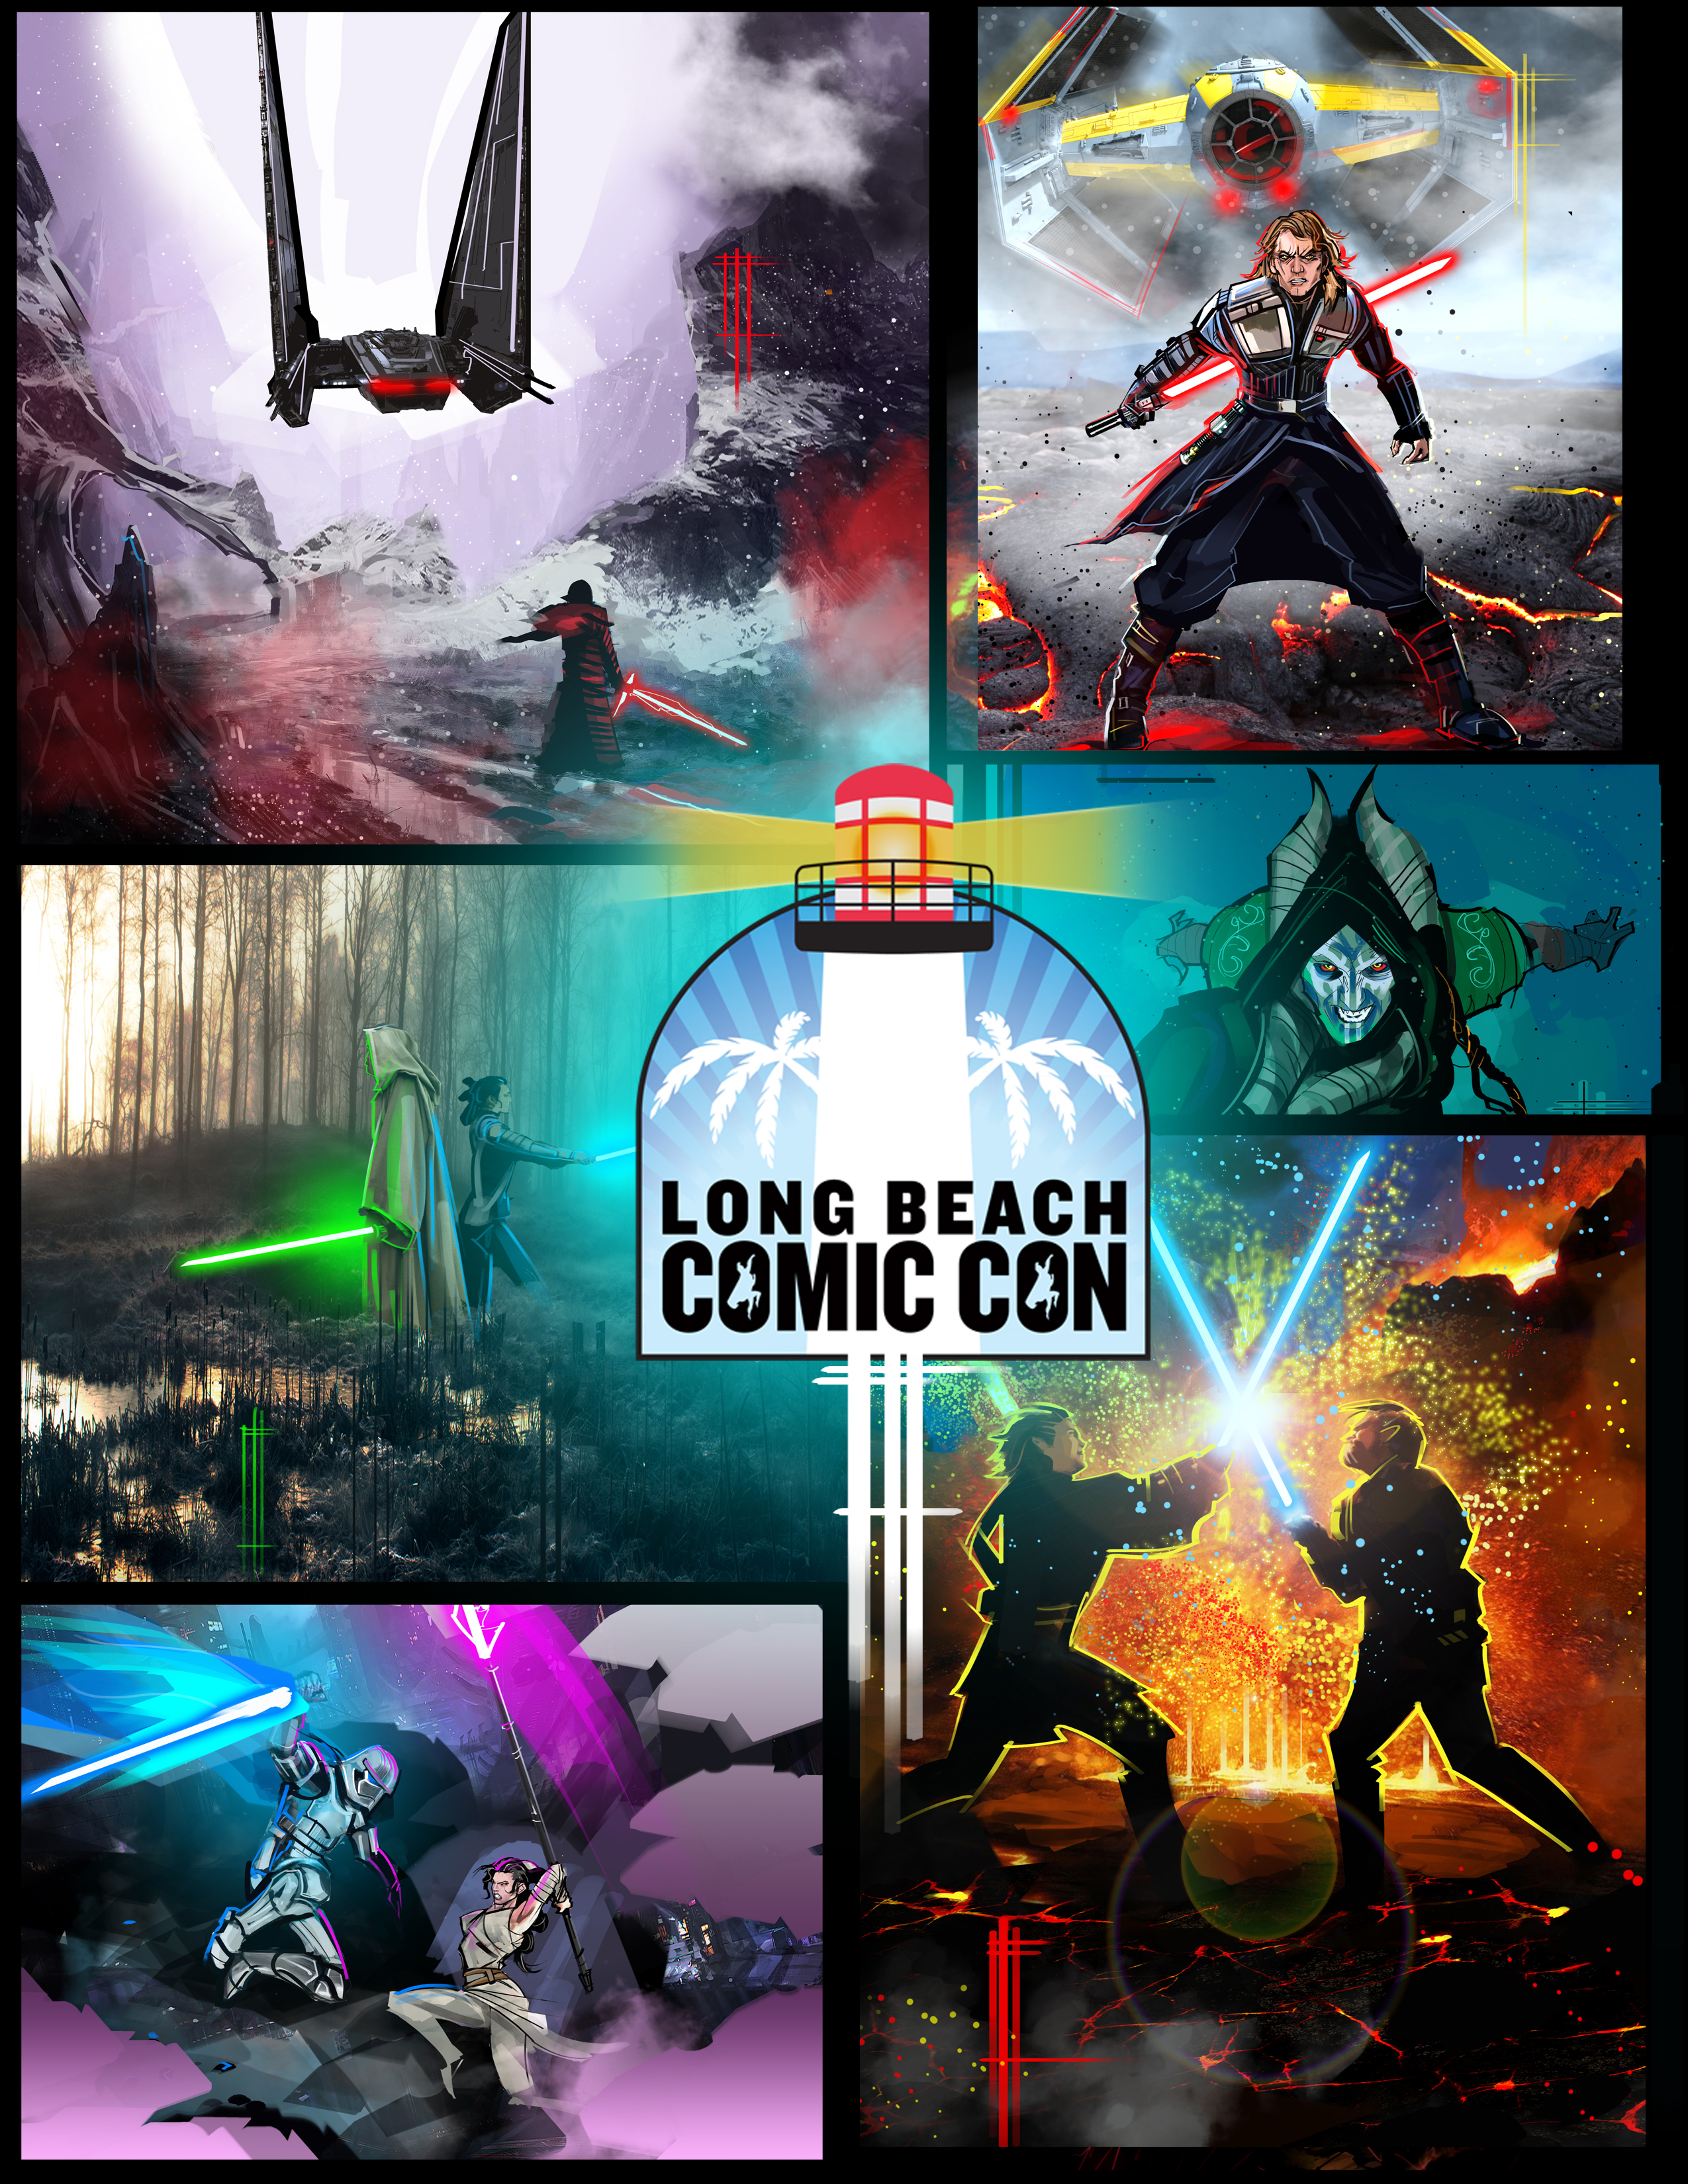 Artist eli hyders star wars art to be on display at long beach our friend eli hyder is a huge star wars fan and will be displayingselling some of his fan art this weekend at long beach comic con buycottarizona